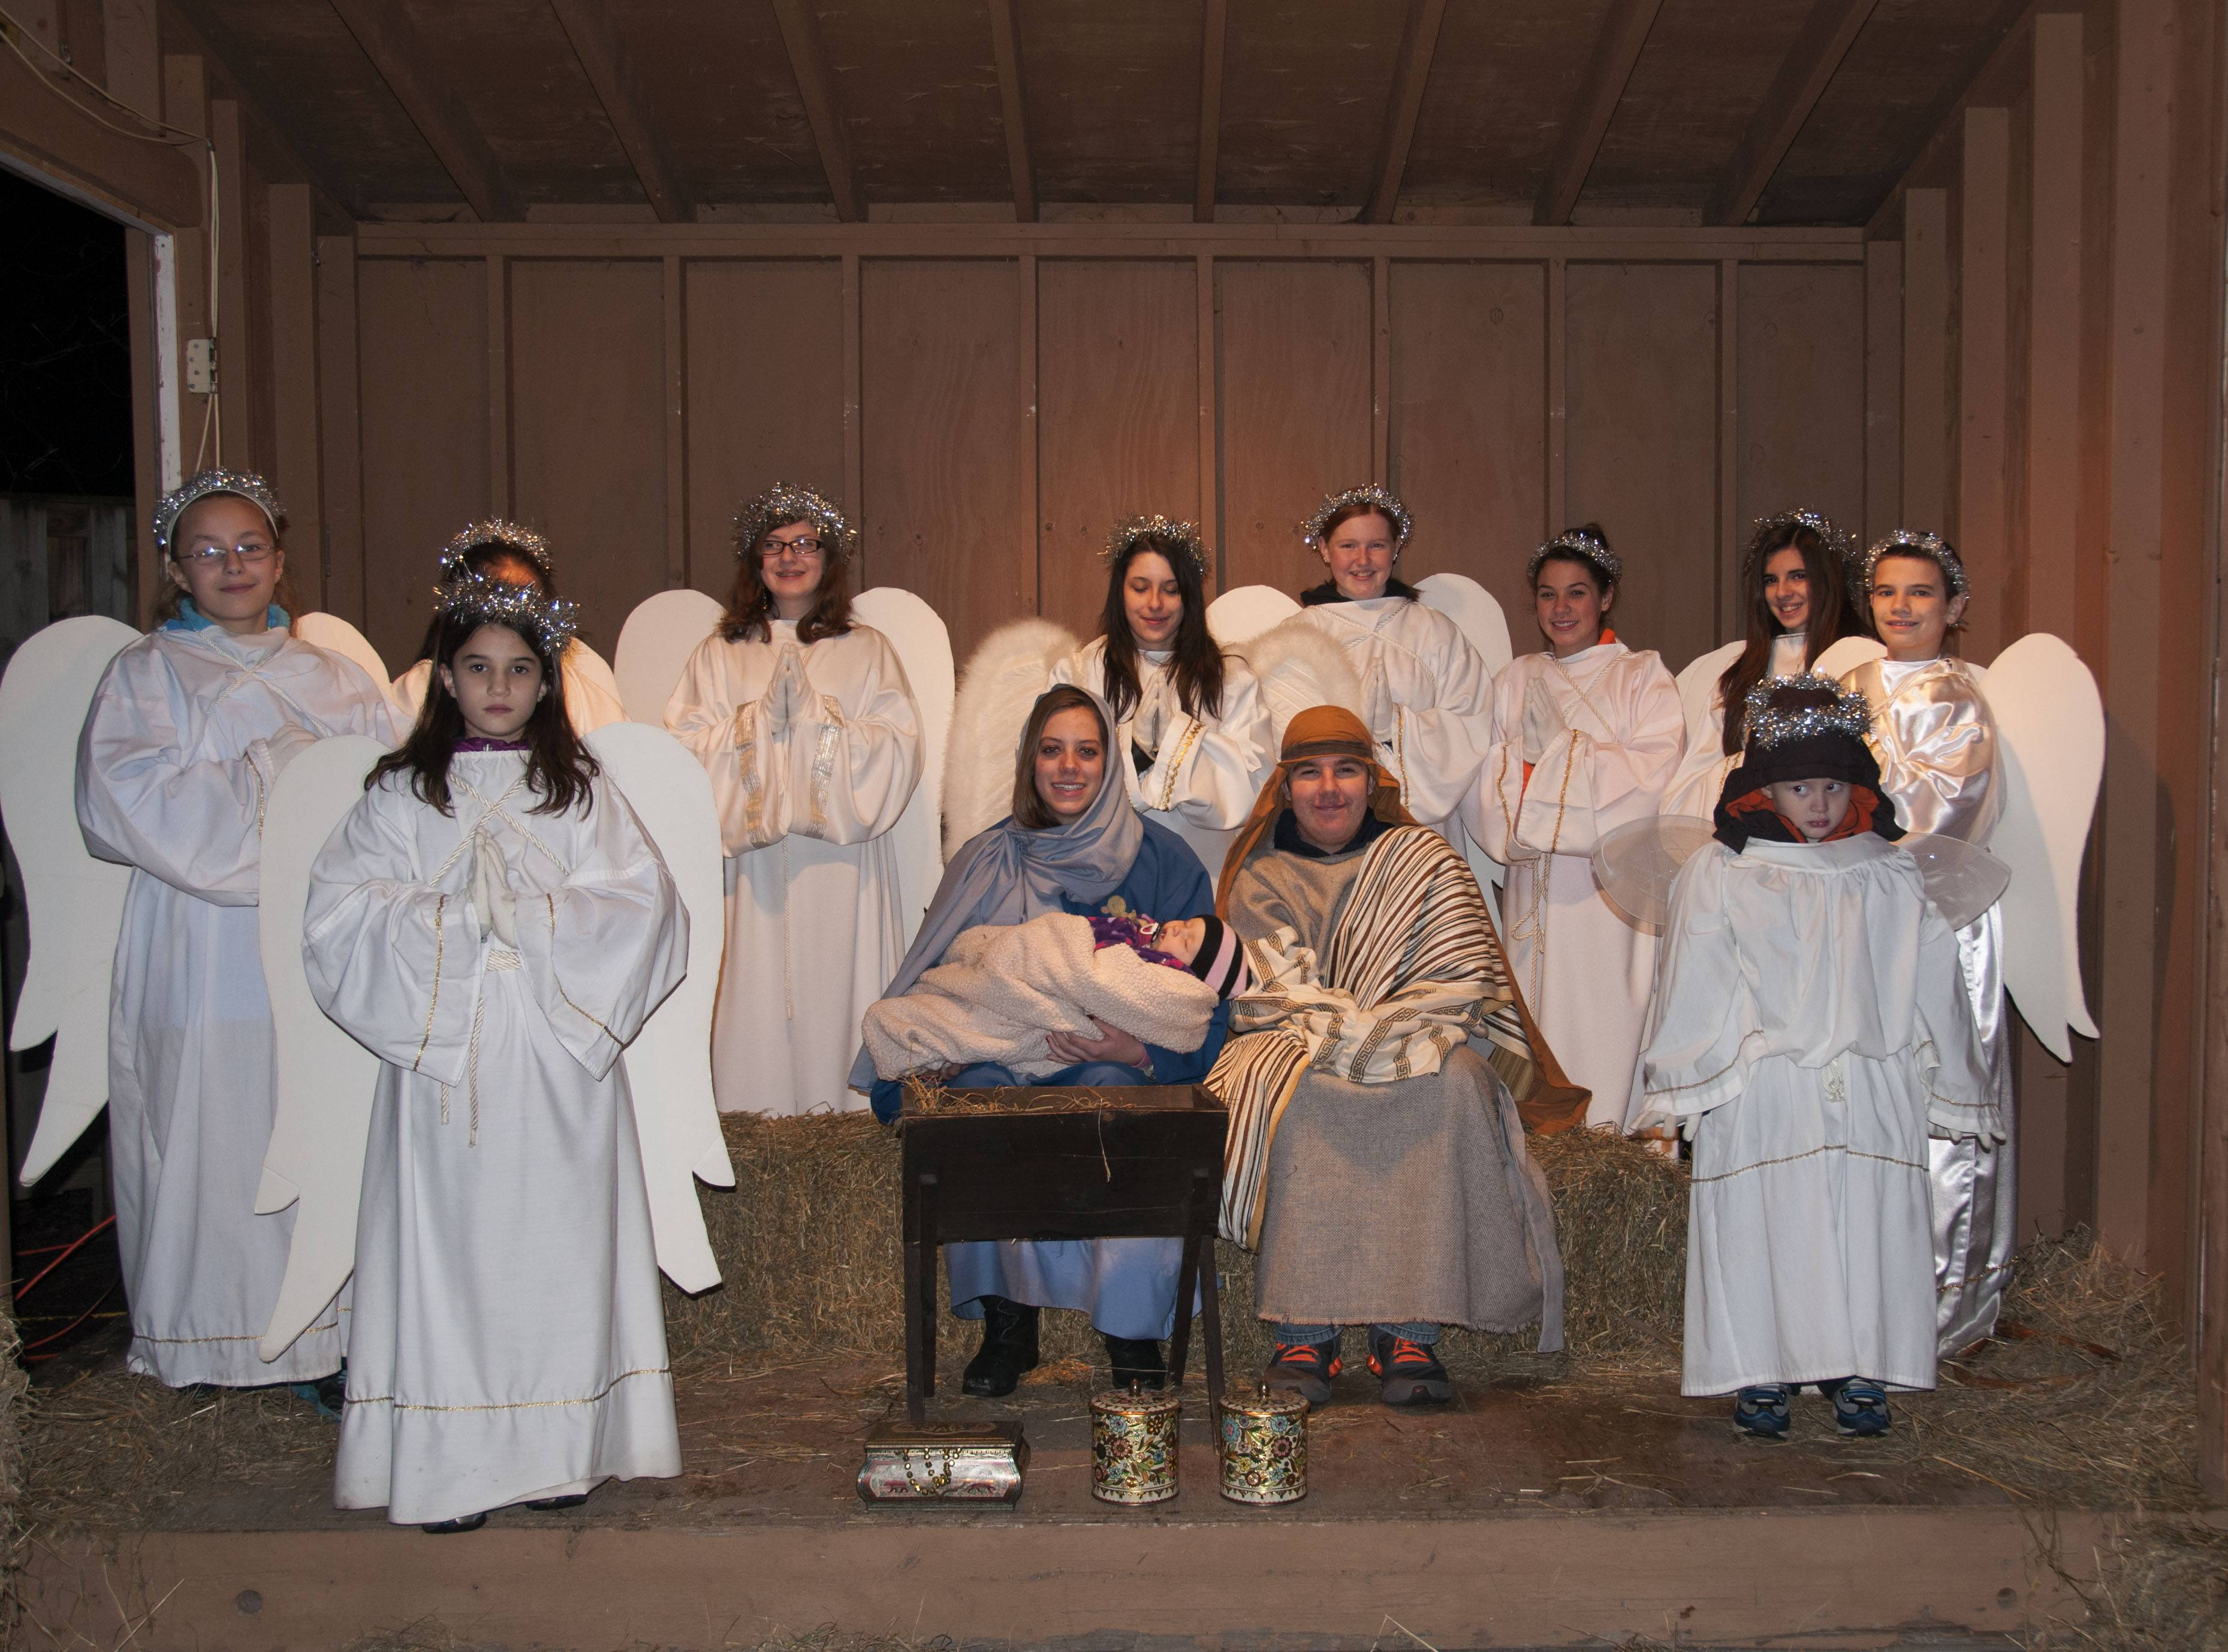 Live Nativity from 2012.